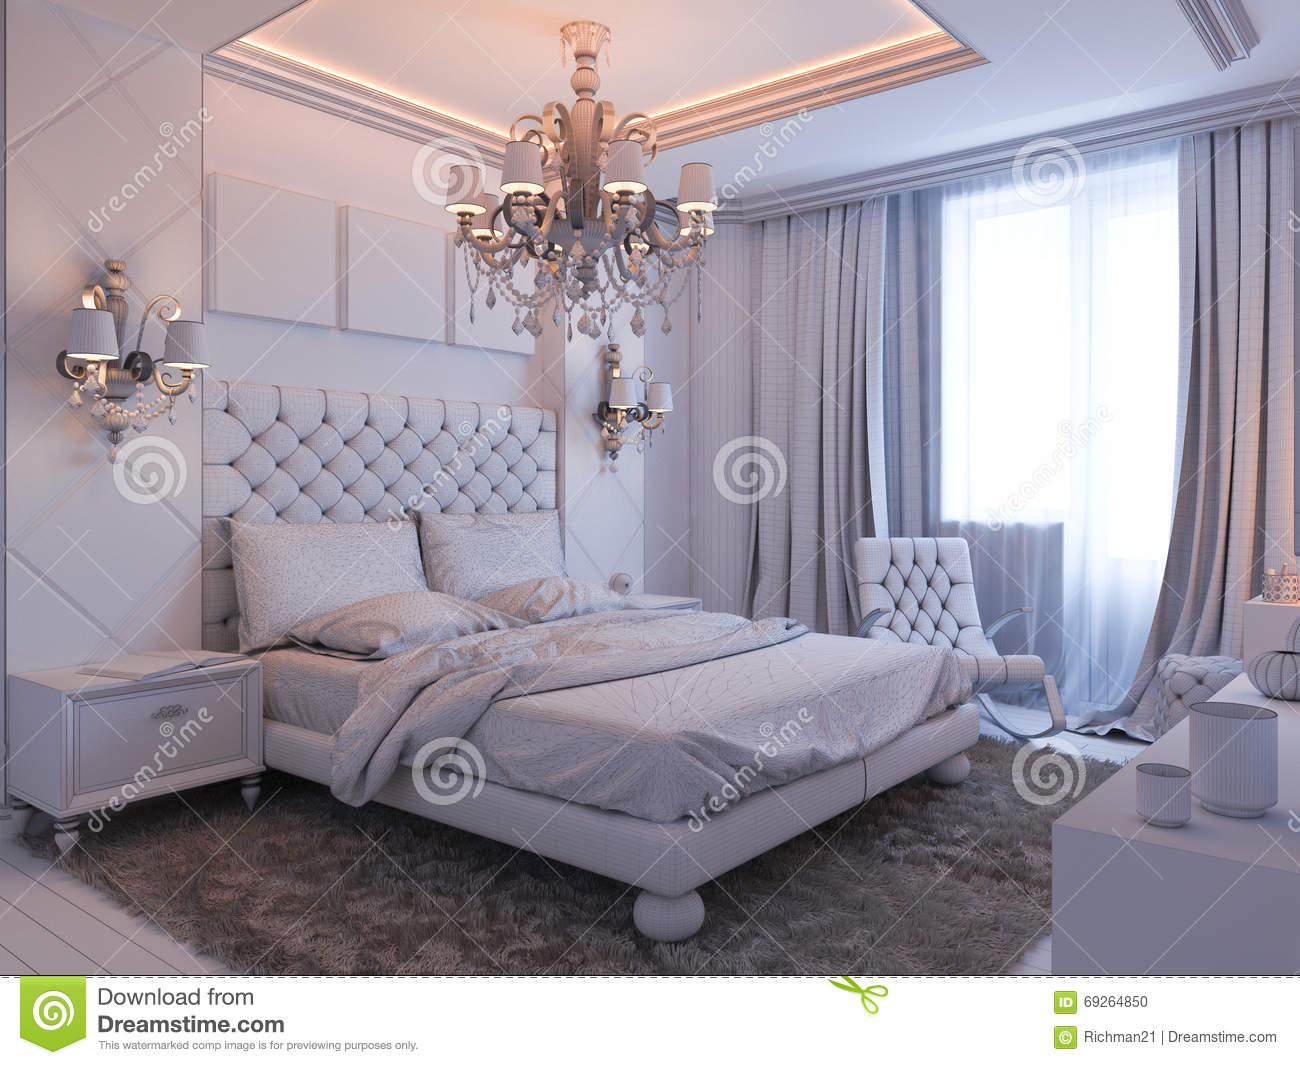 3d render of bedroom interior design in a modern classic for Classic american decorating style